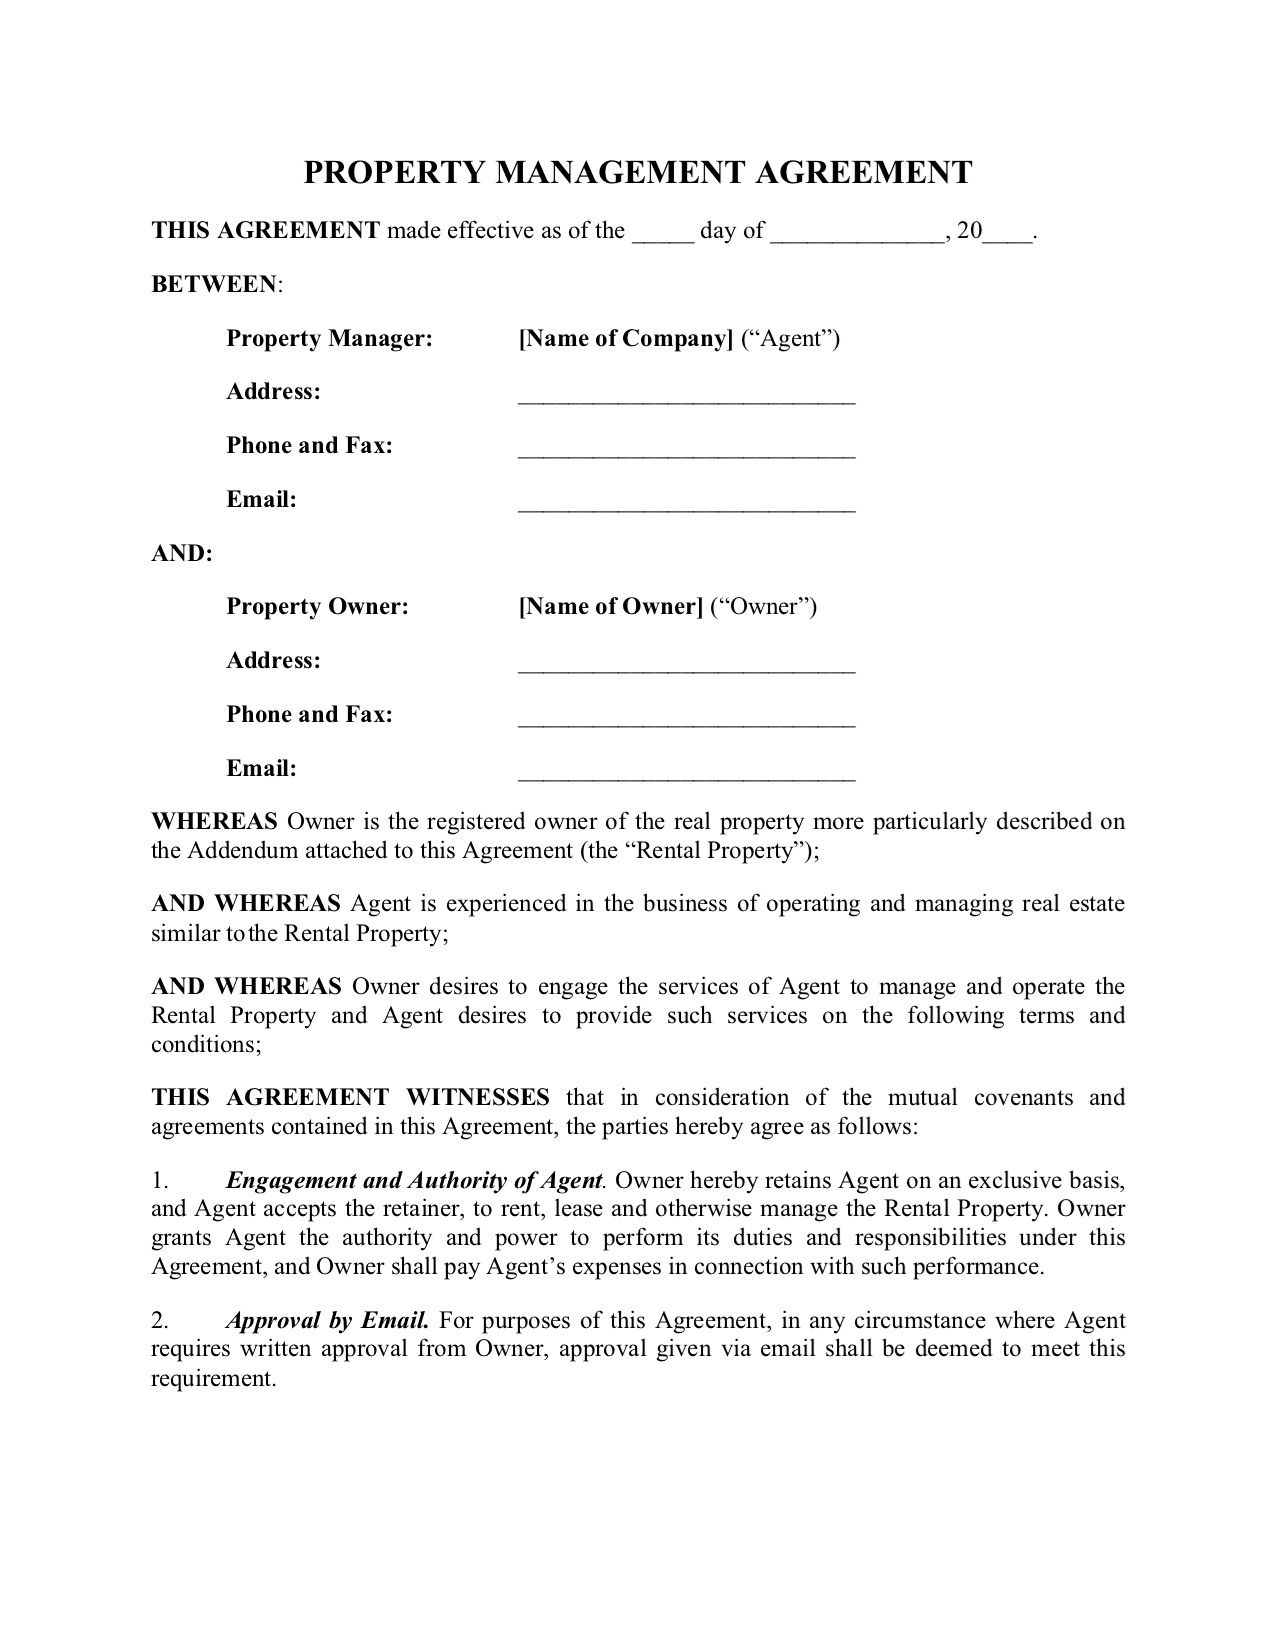 003 Astounding Property Management Agreement Template Design  Templates Sample Termination Of Commercial FormFull